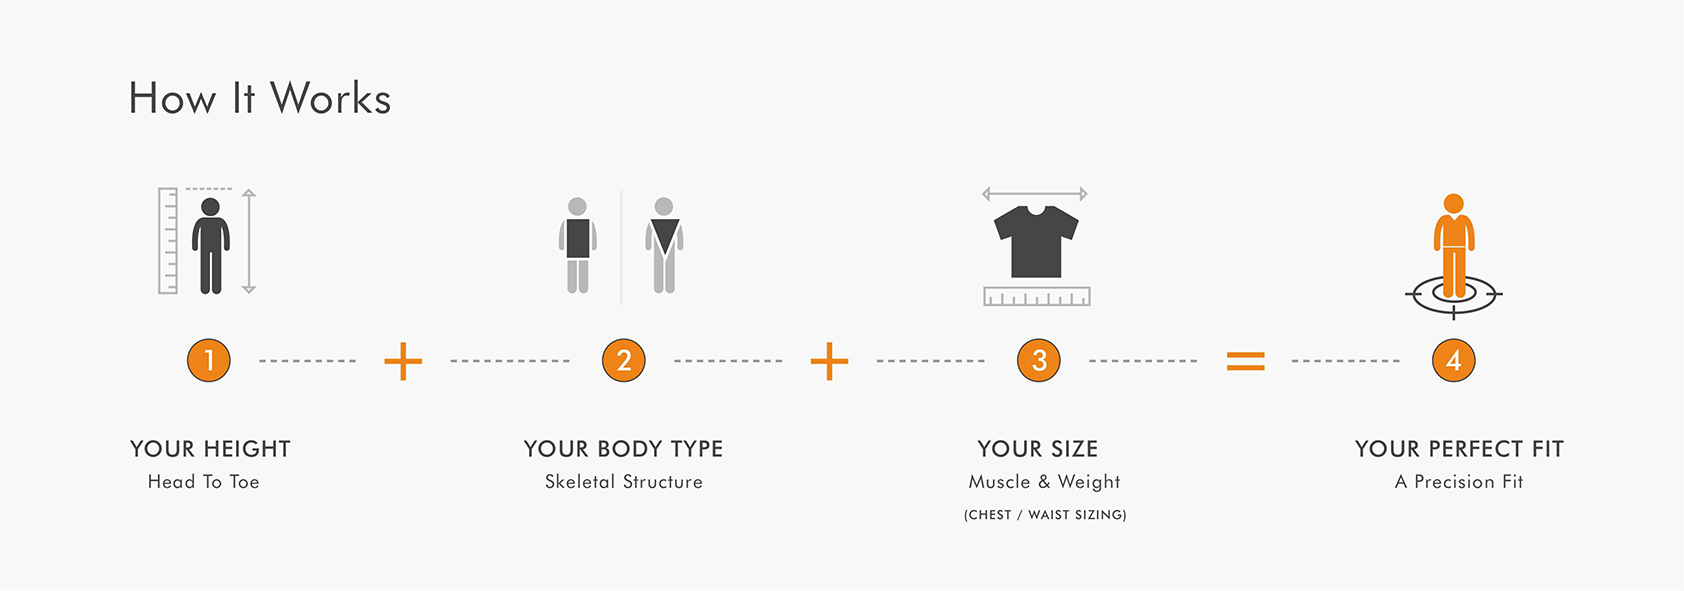 otero menswear clothing chart and how the shirts and polos fit - how it works